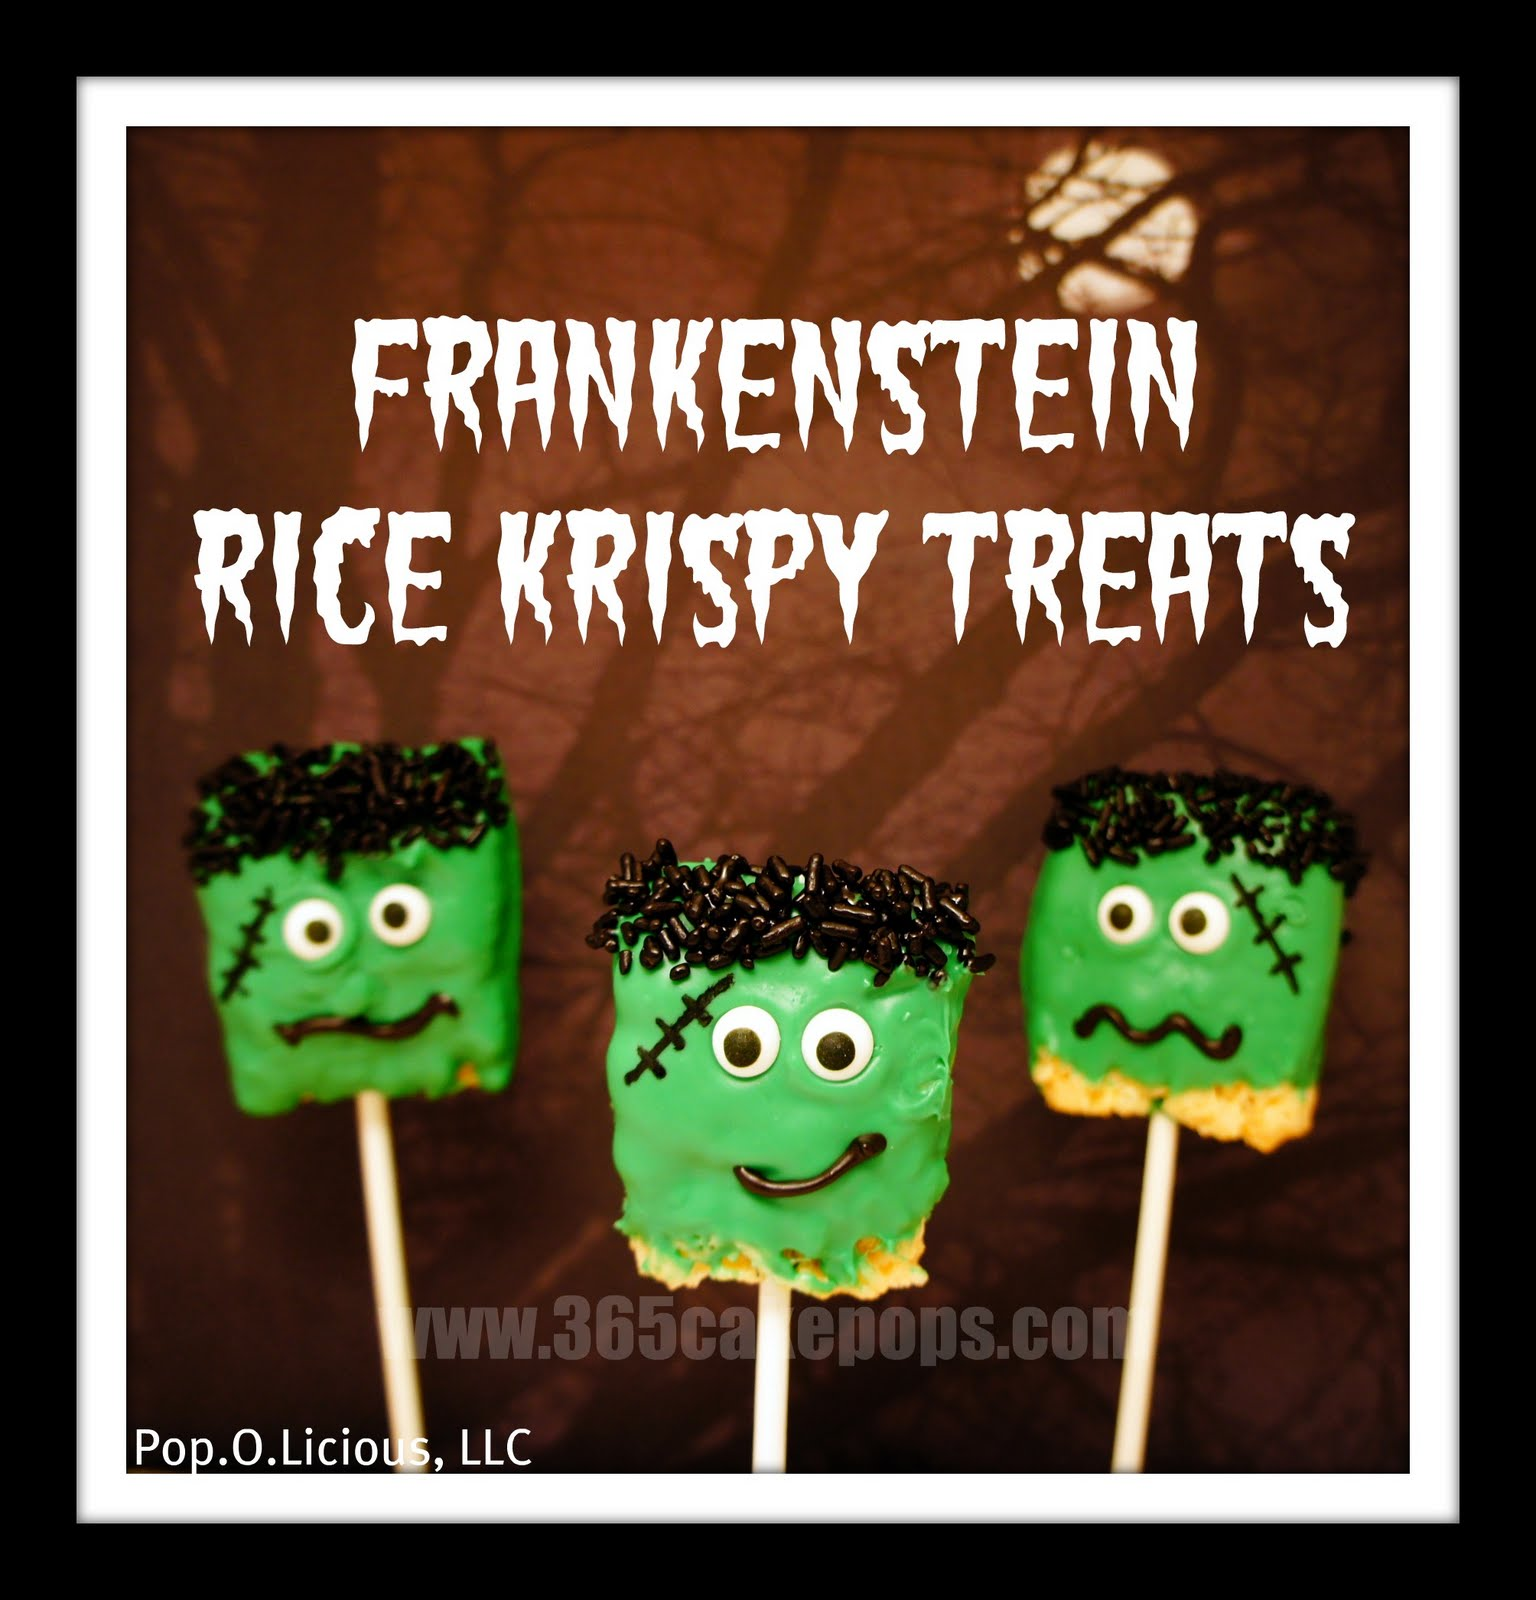 she made some frankenstein rice krispy pops take a look at how cute and scary she made her frankensteins look